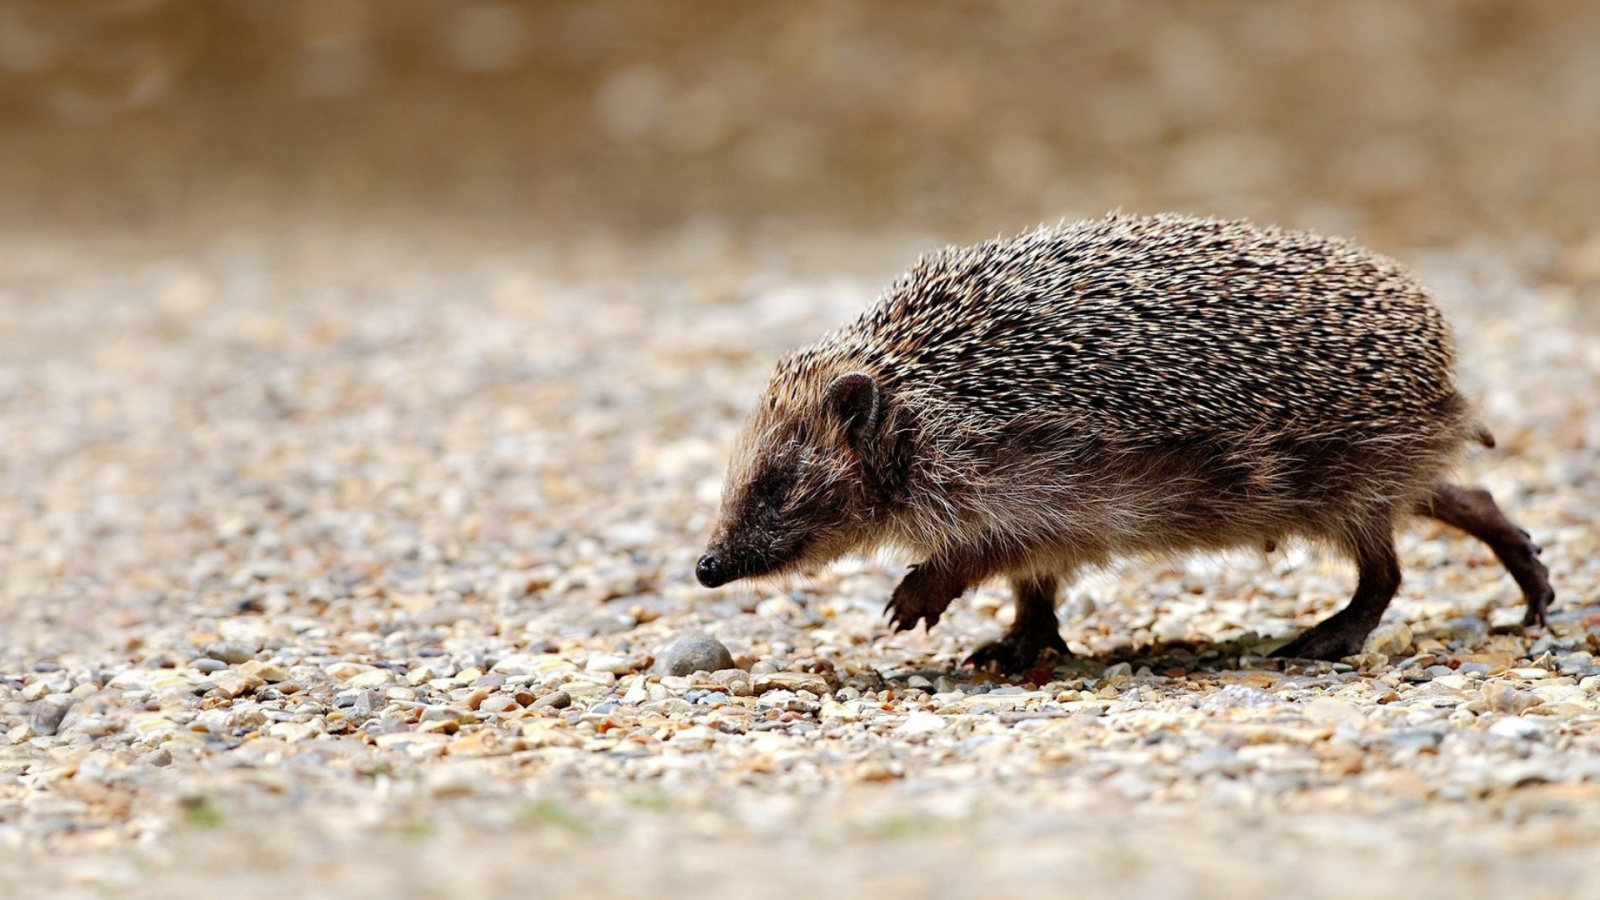 Hedgehog walking